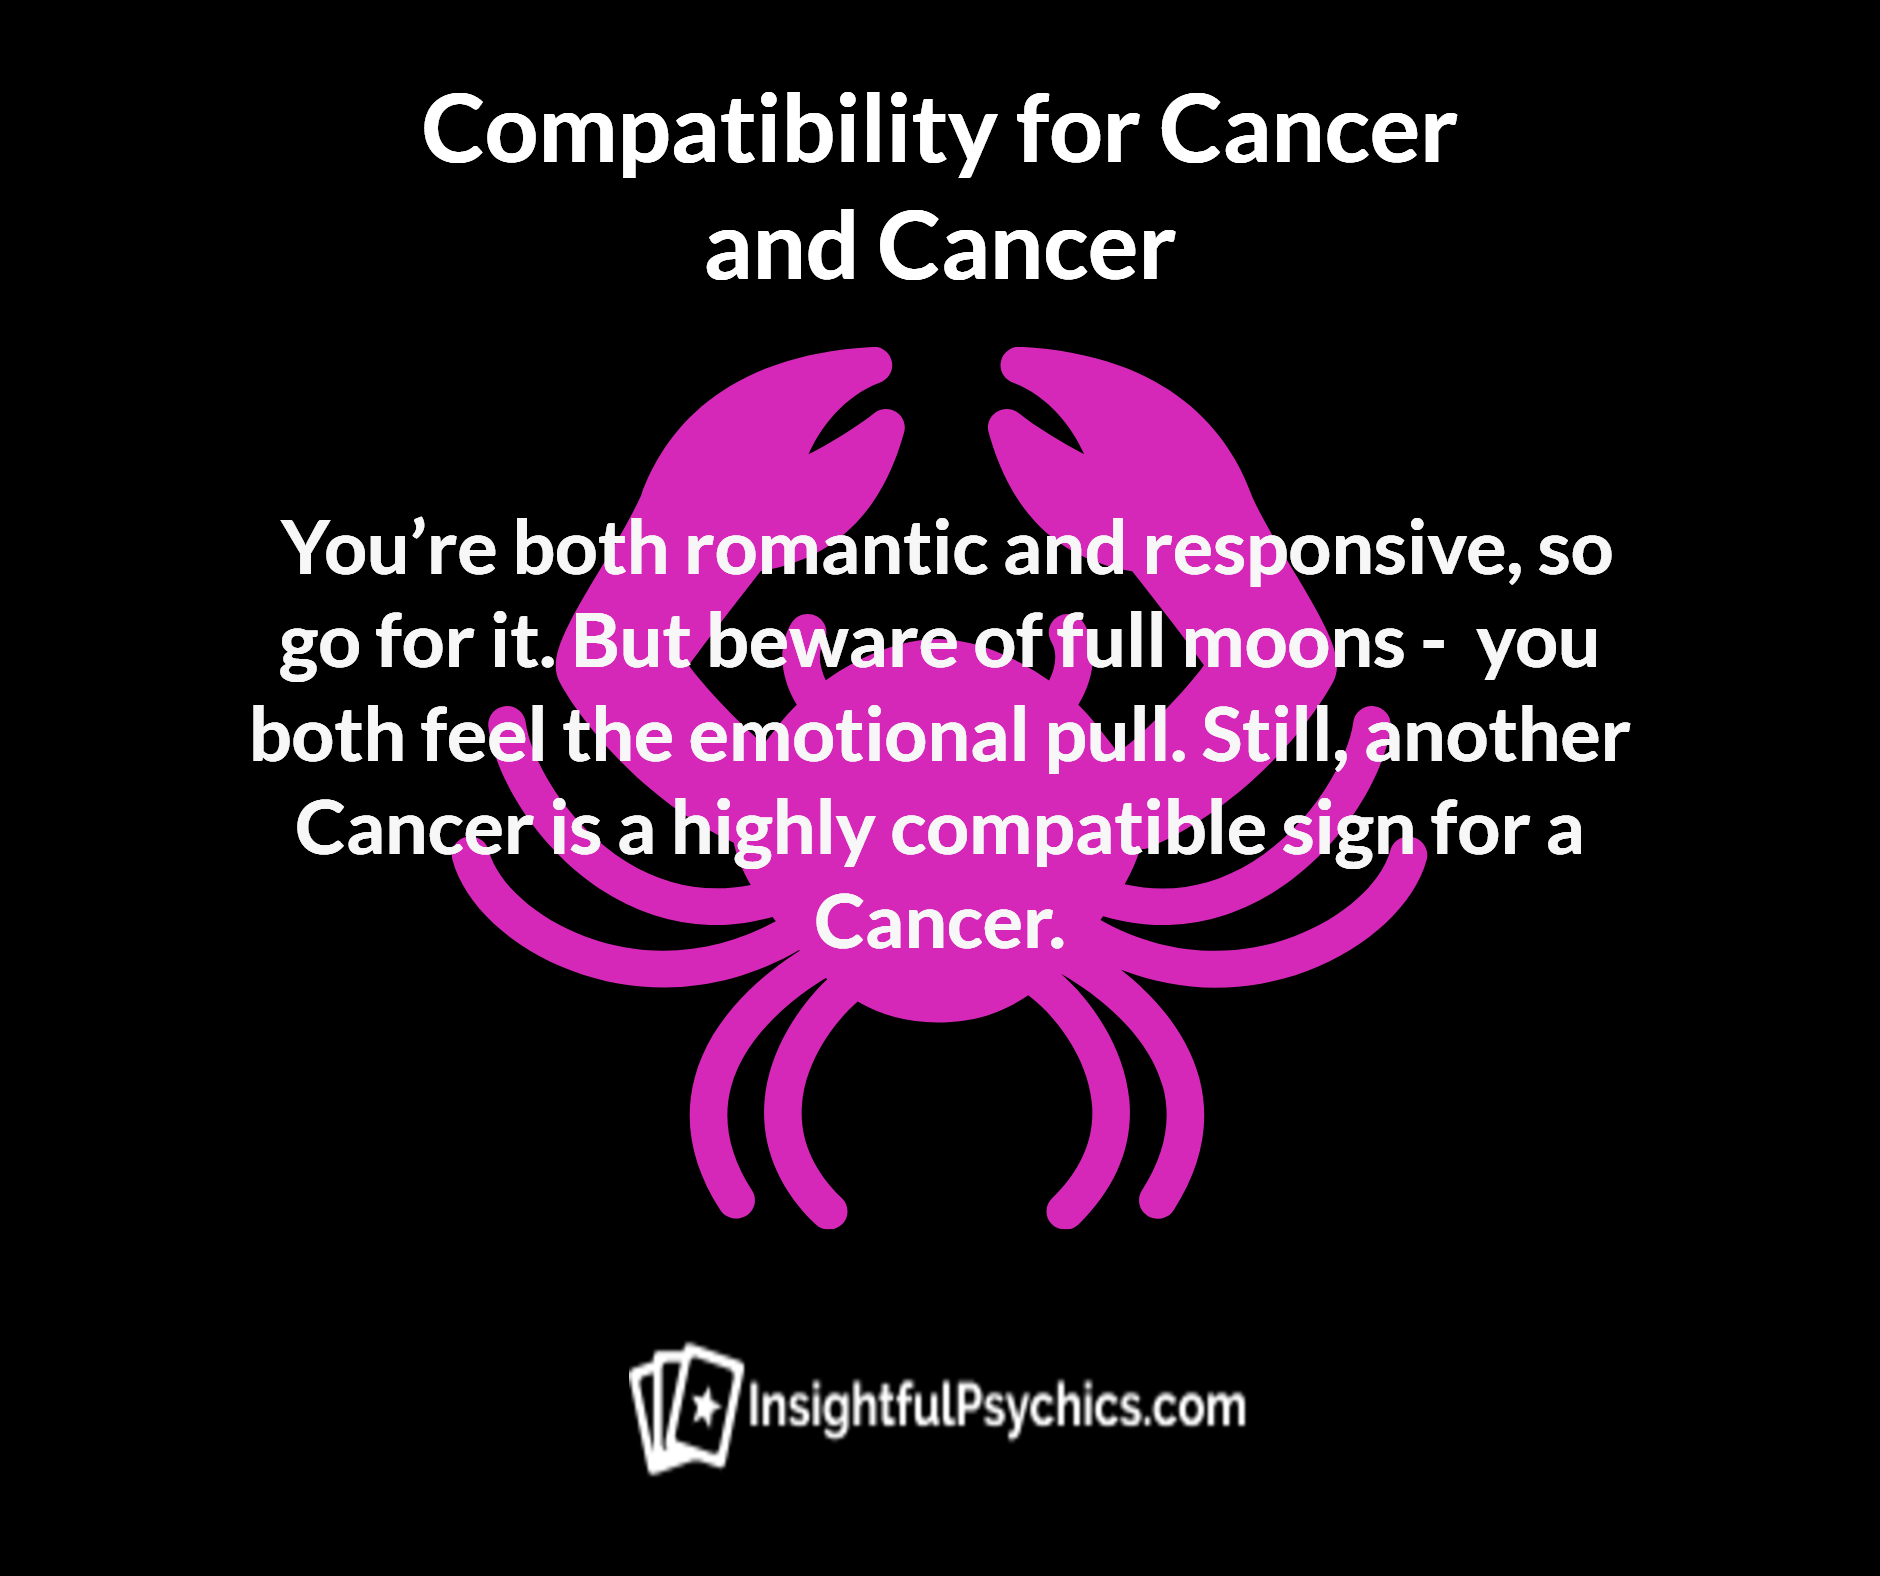 Is cancer and cancer compatible